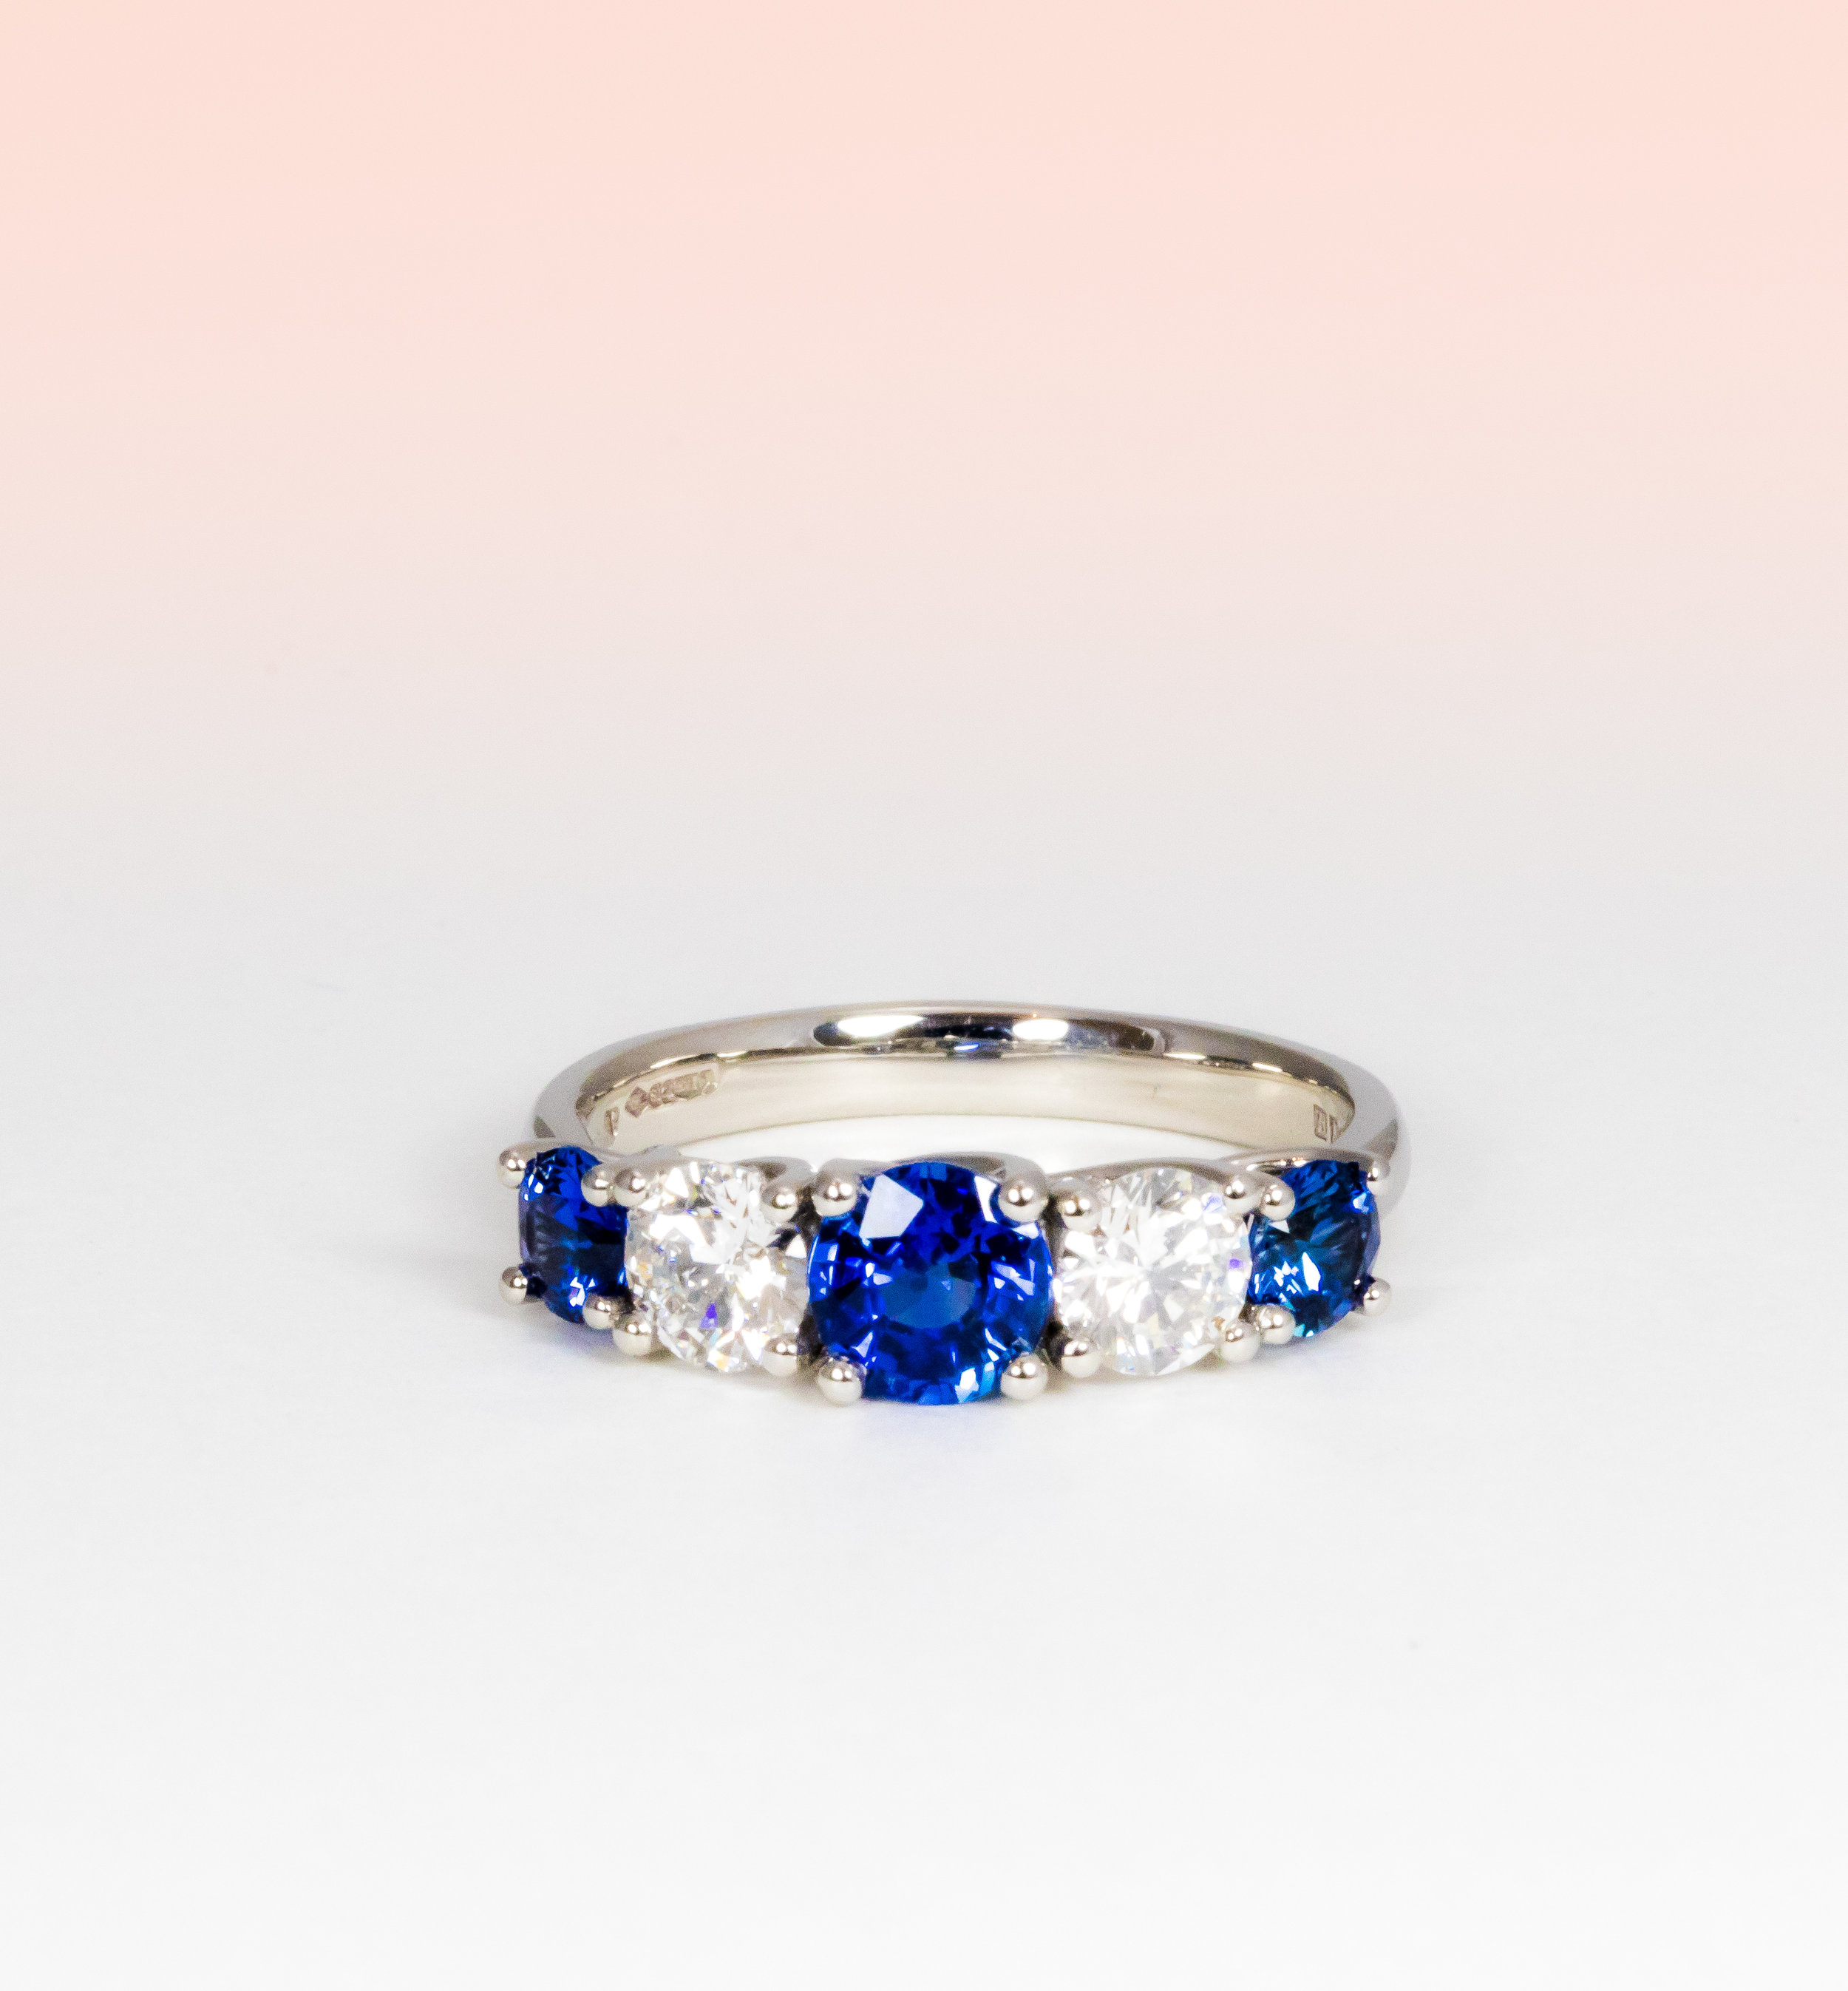 Platinum mounted, five stone sapphire and diamond ring. Made in Chichester, England.